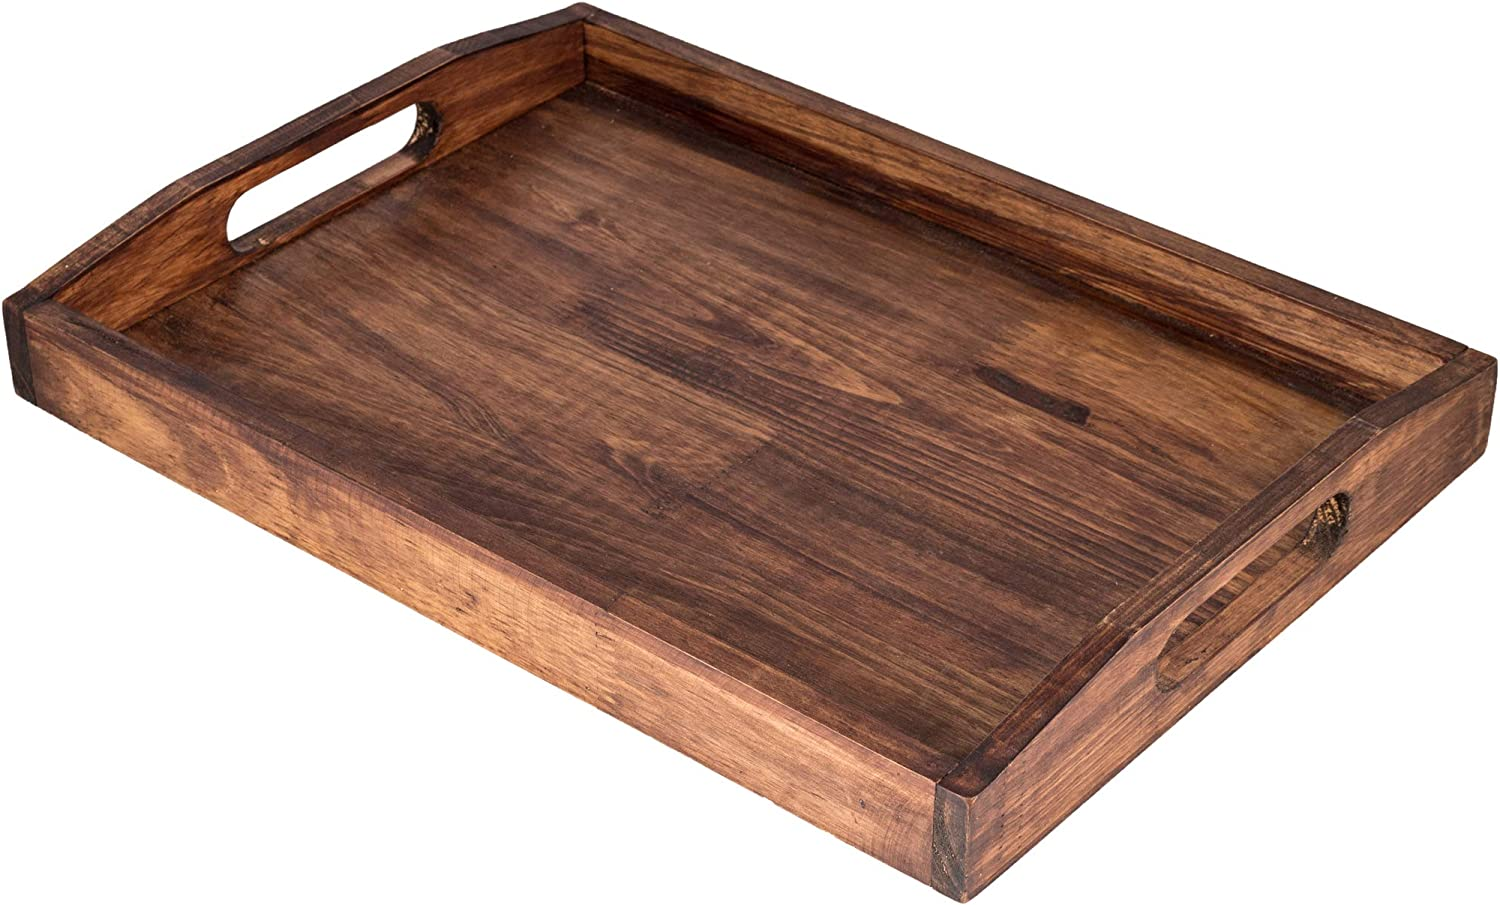 Large Serving Tray Wooden Rustic 16.54 x 11.81 x 1.96 Inch With Handles Fruit Food Breakfast Coffee Cupcake Decorative Dinner Party